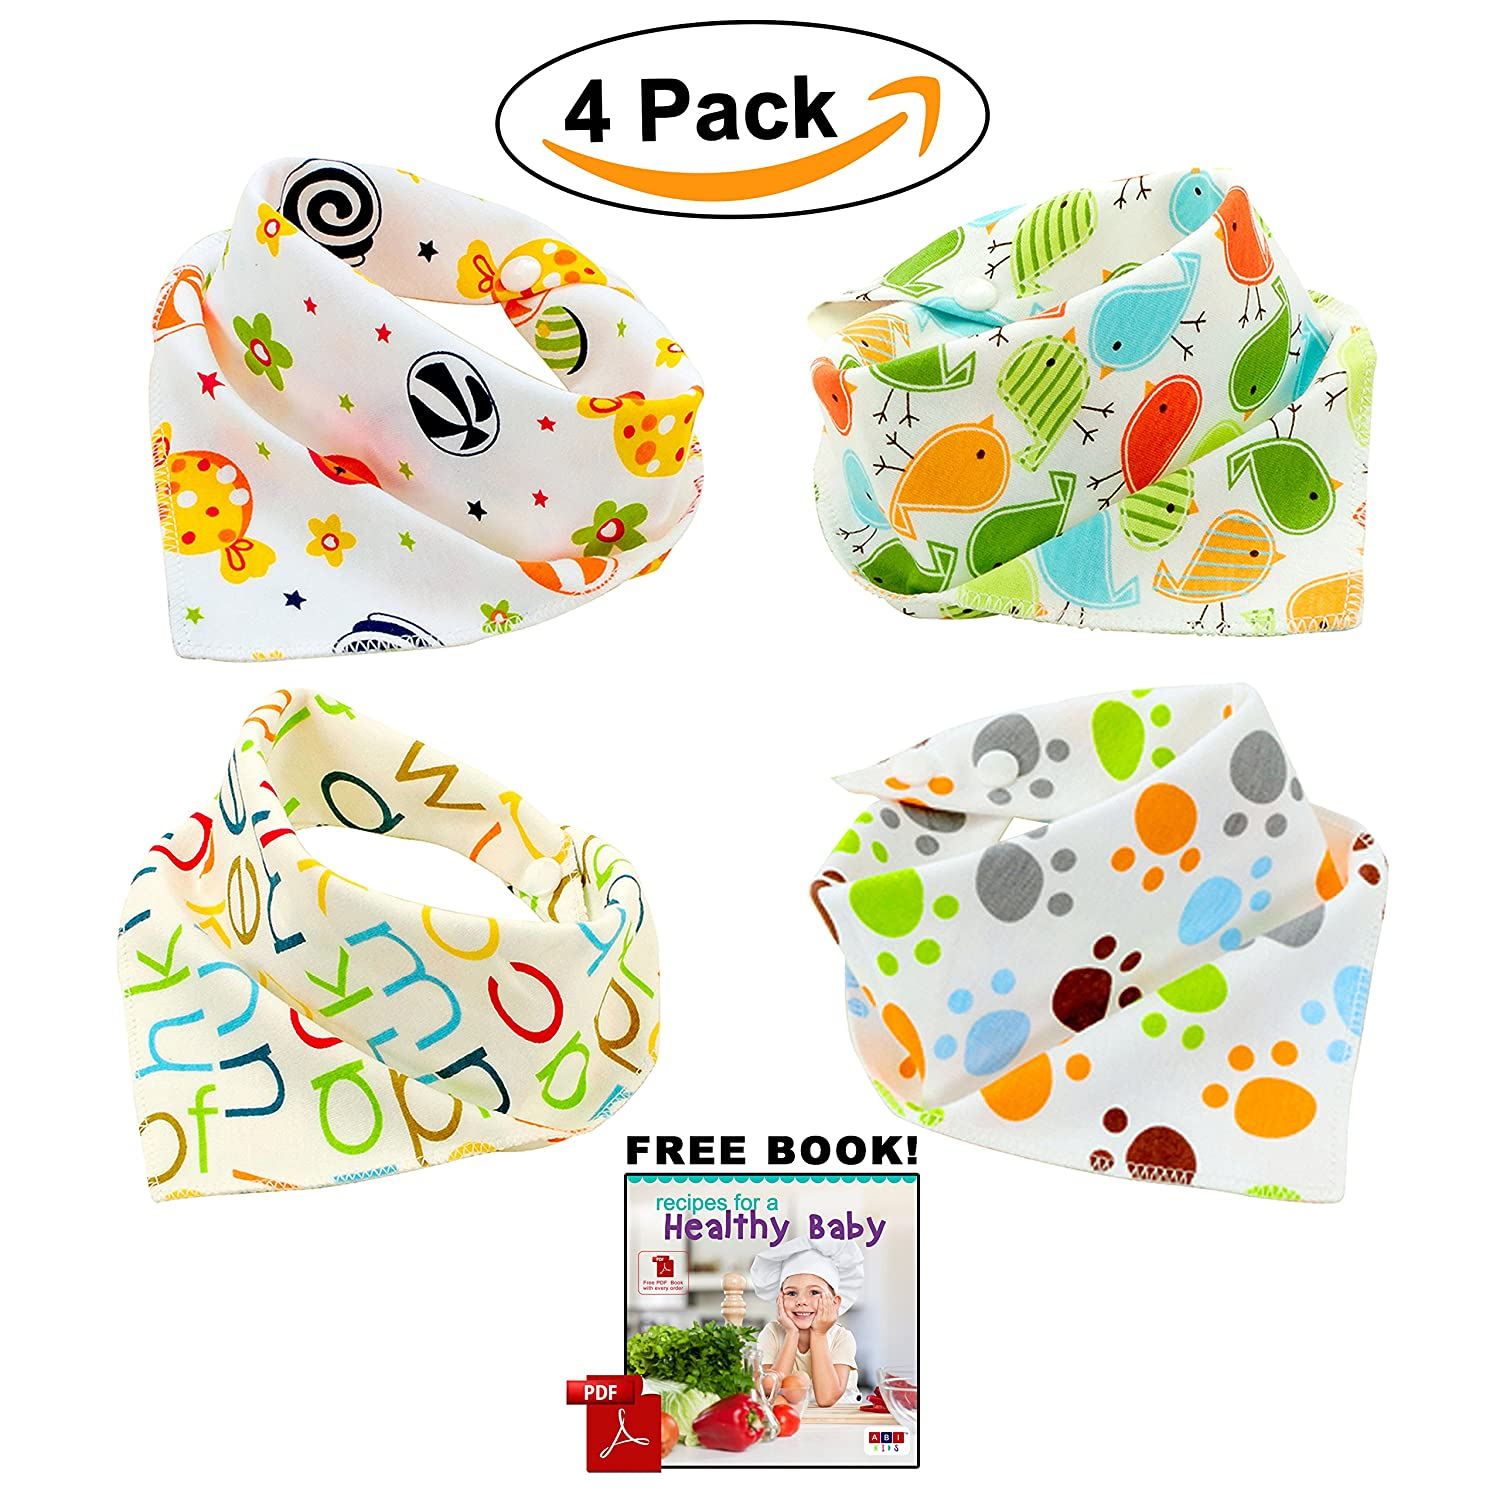 Bandana Baby Bibs Cute Unisex for Boys and Girls 100% Cotton Super-Stylish Anti-Smell Anti-Bacterial Apron Bibs Quick Dry Avoids Drool Rash with Nickel-Free Snaps, Best for Sensitive Skin, Buy Now